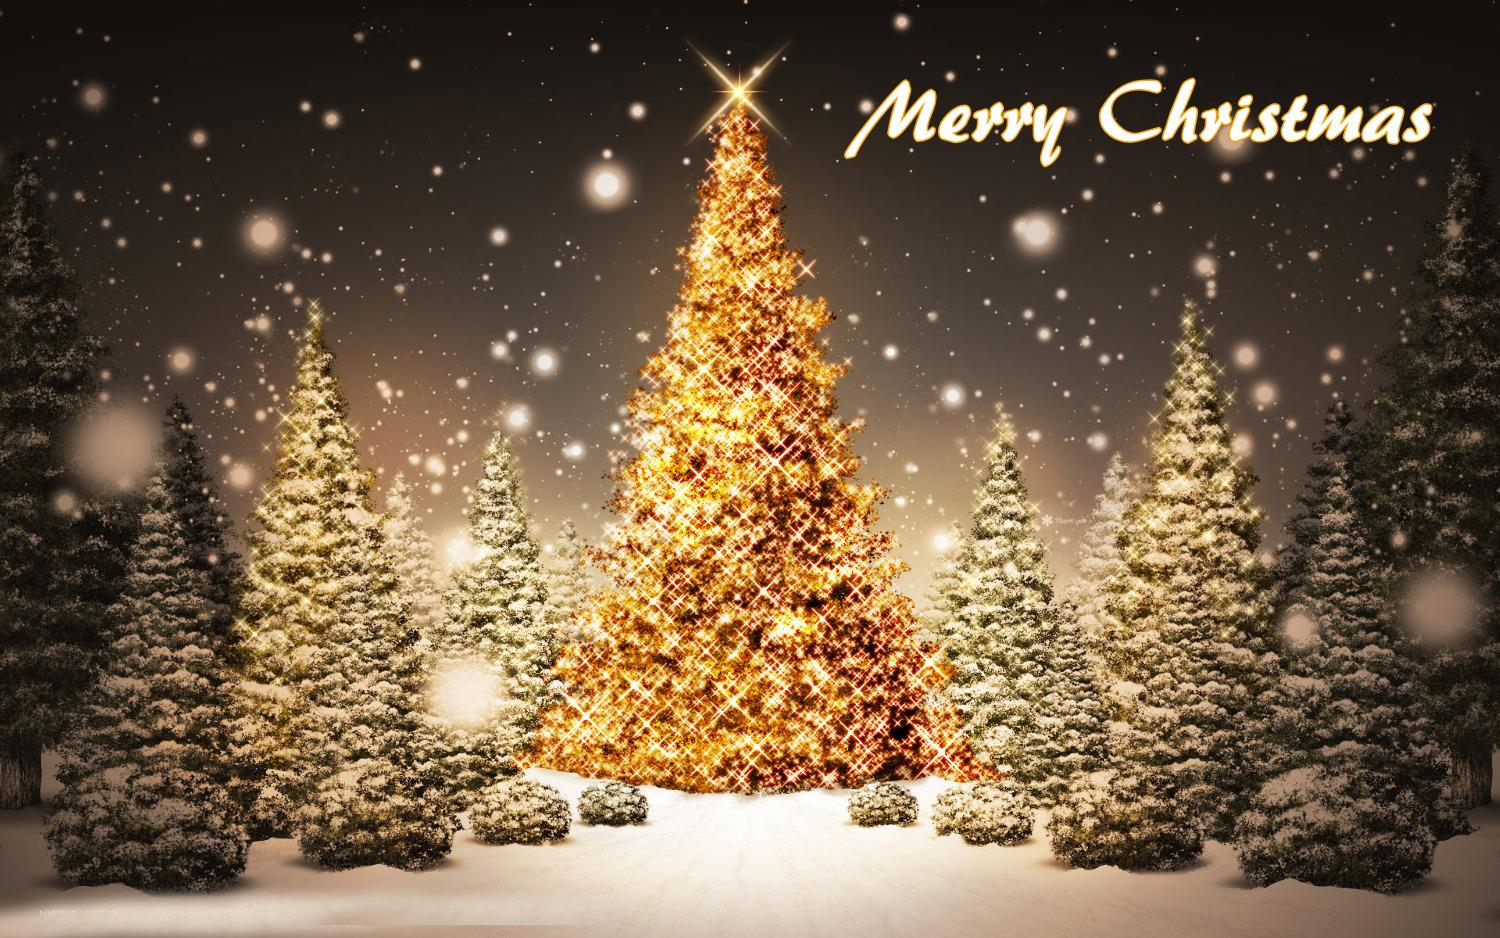 Merry Christmas Tree Hd Wallpaper free download